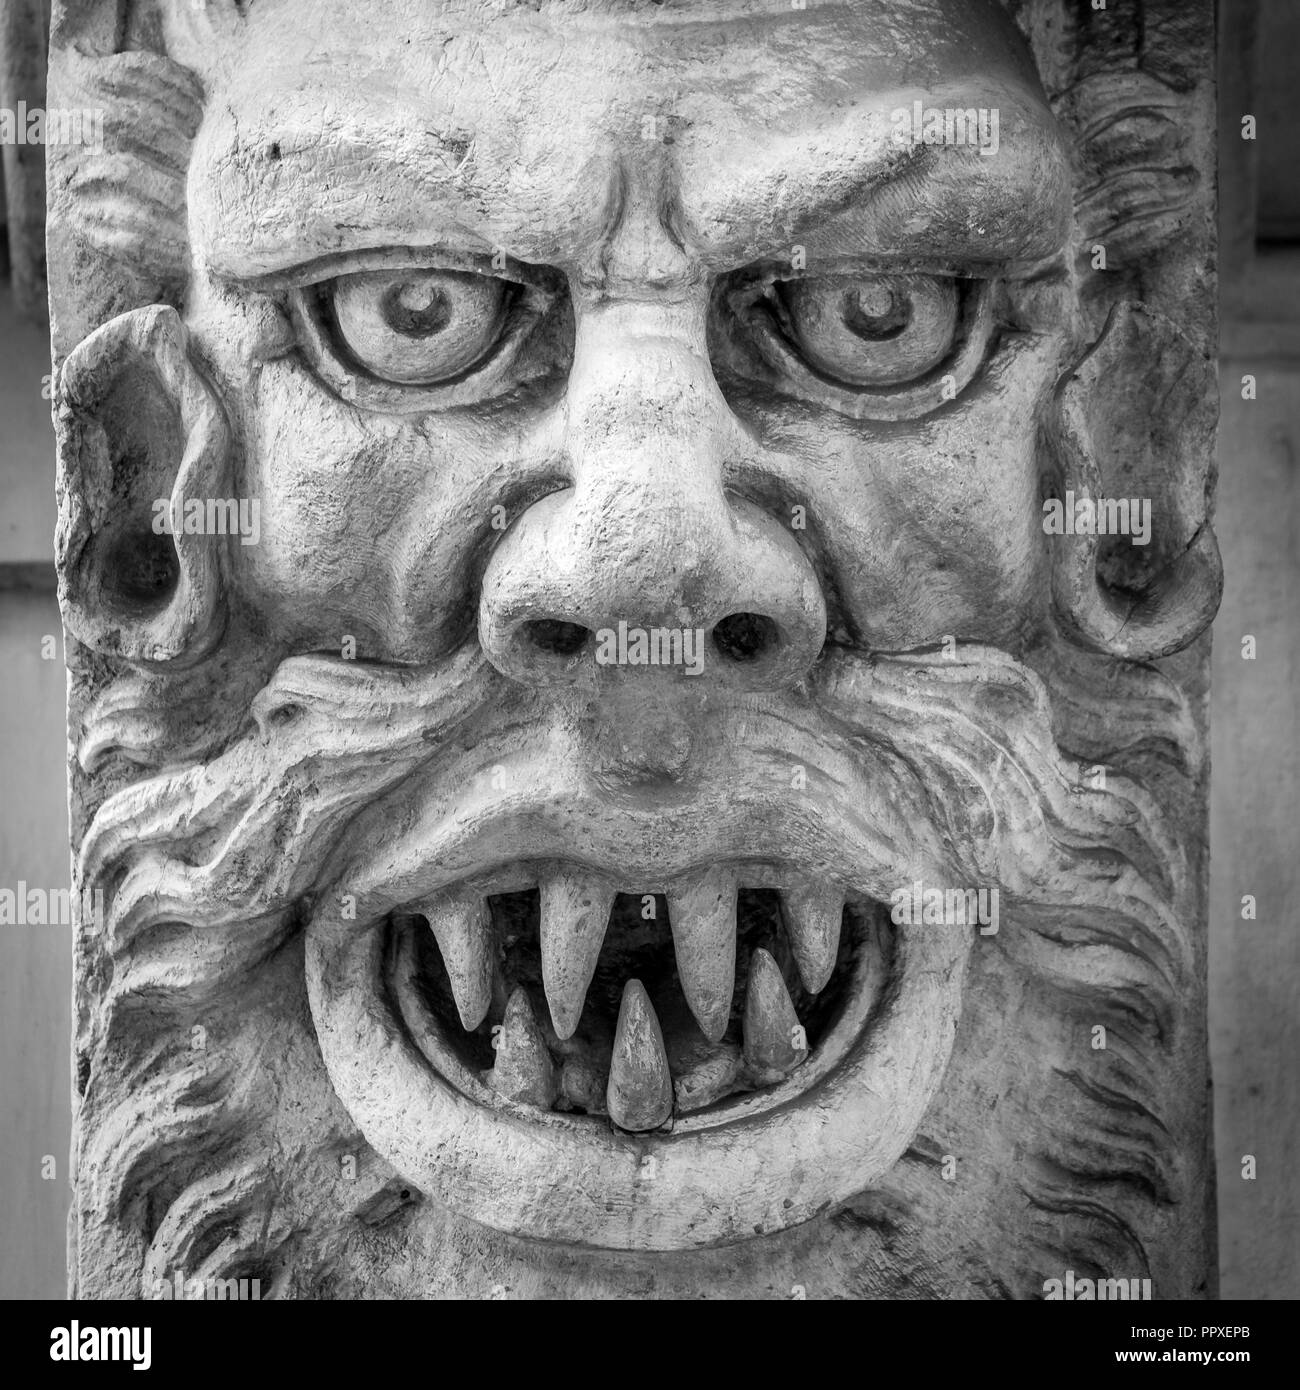 Italy, Turin. This city is famous to be a corner of two global magical triangles. This is a protective mask of stone on the top of a luxury palace ent - Stock Image